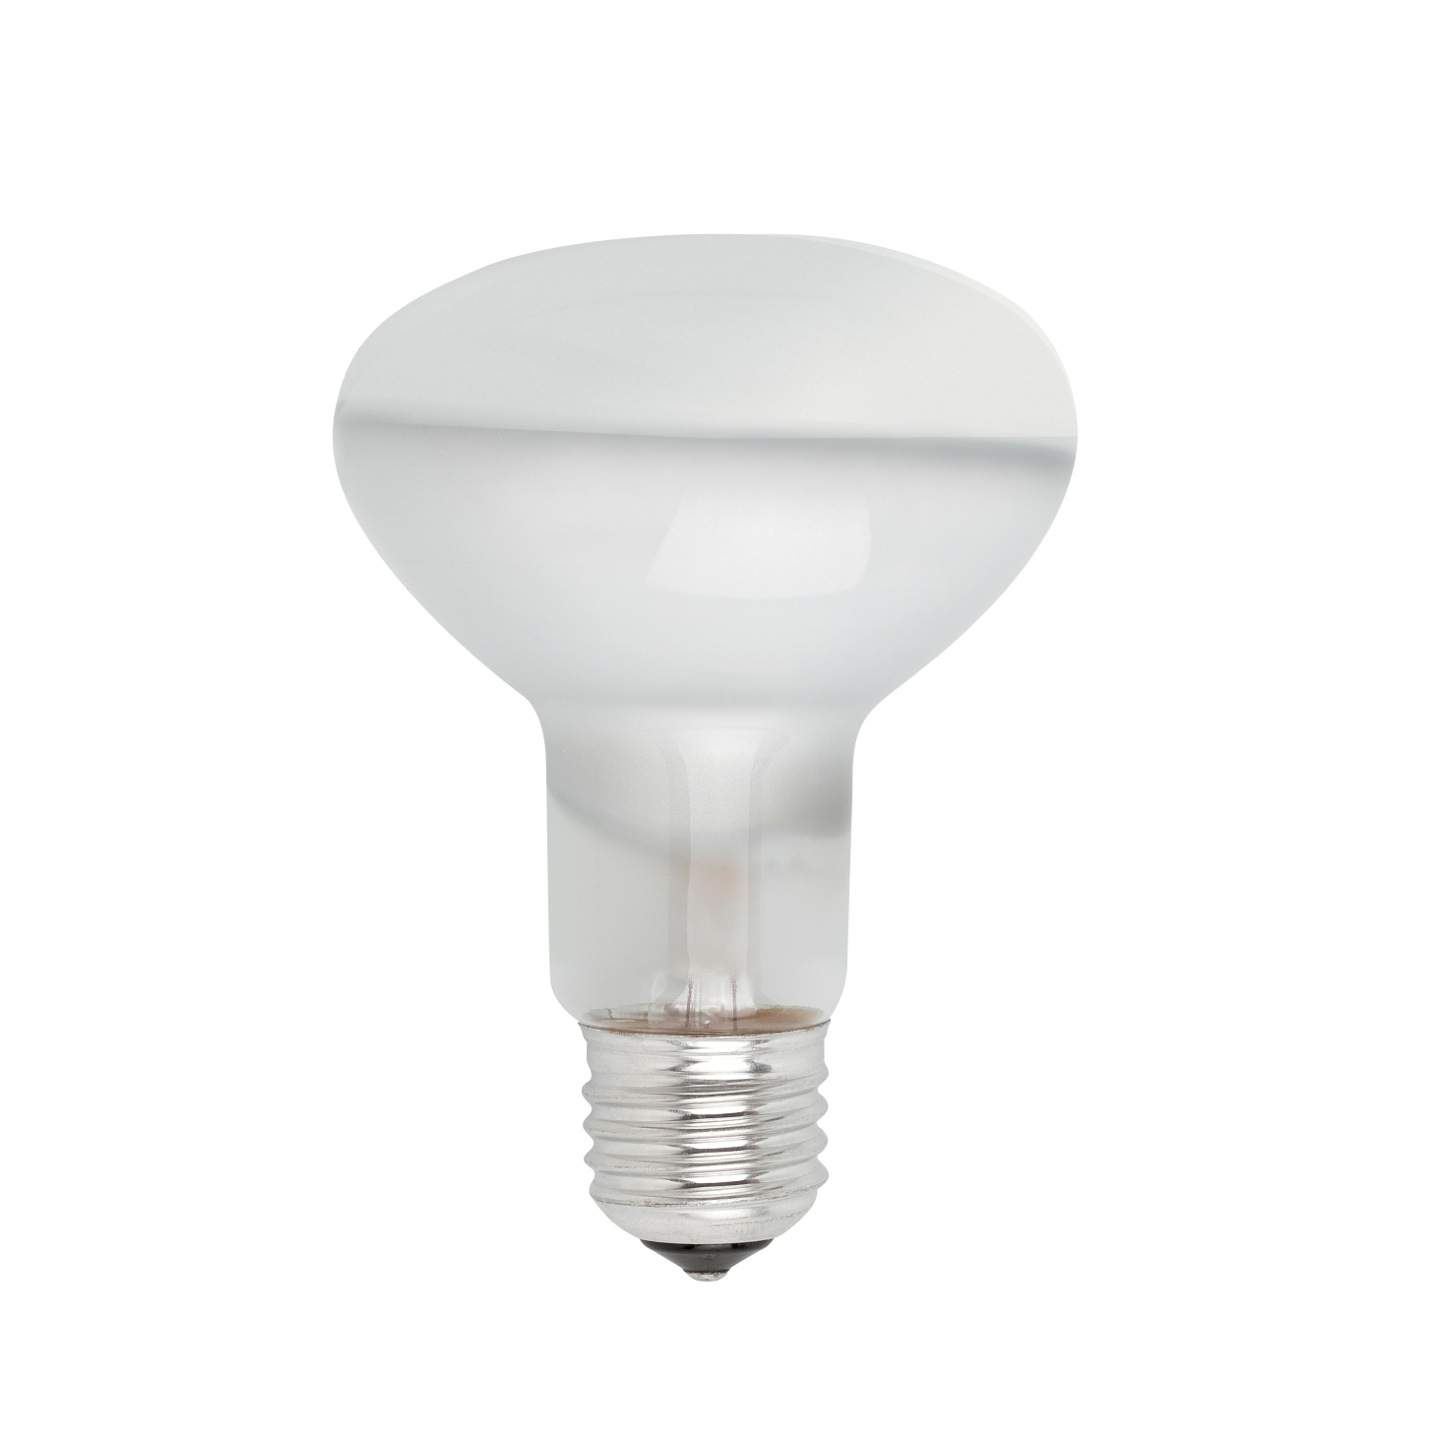 Bombilla Eco Halogen R80 E27 52w Eco Halogen 750cd